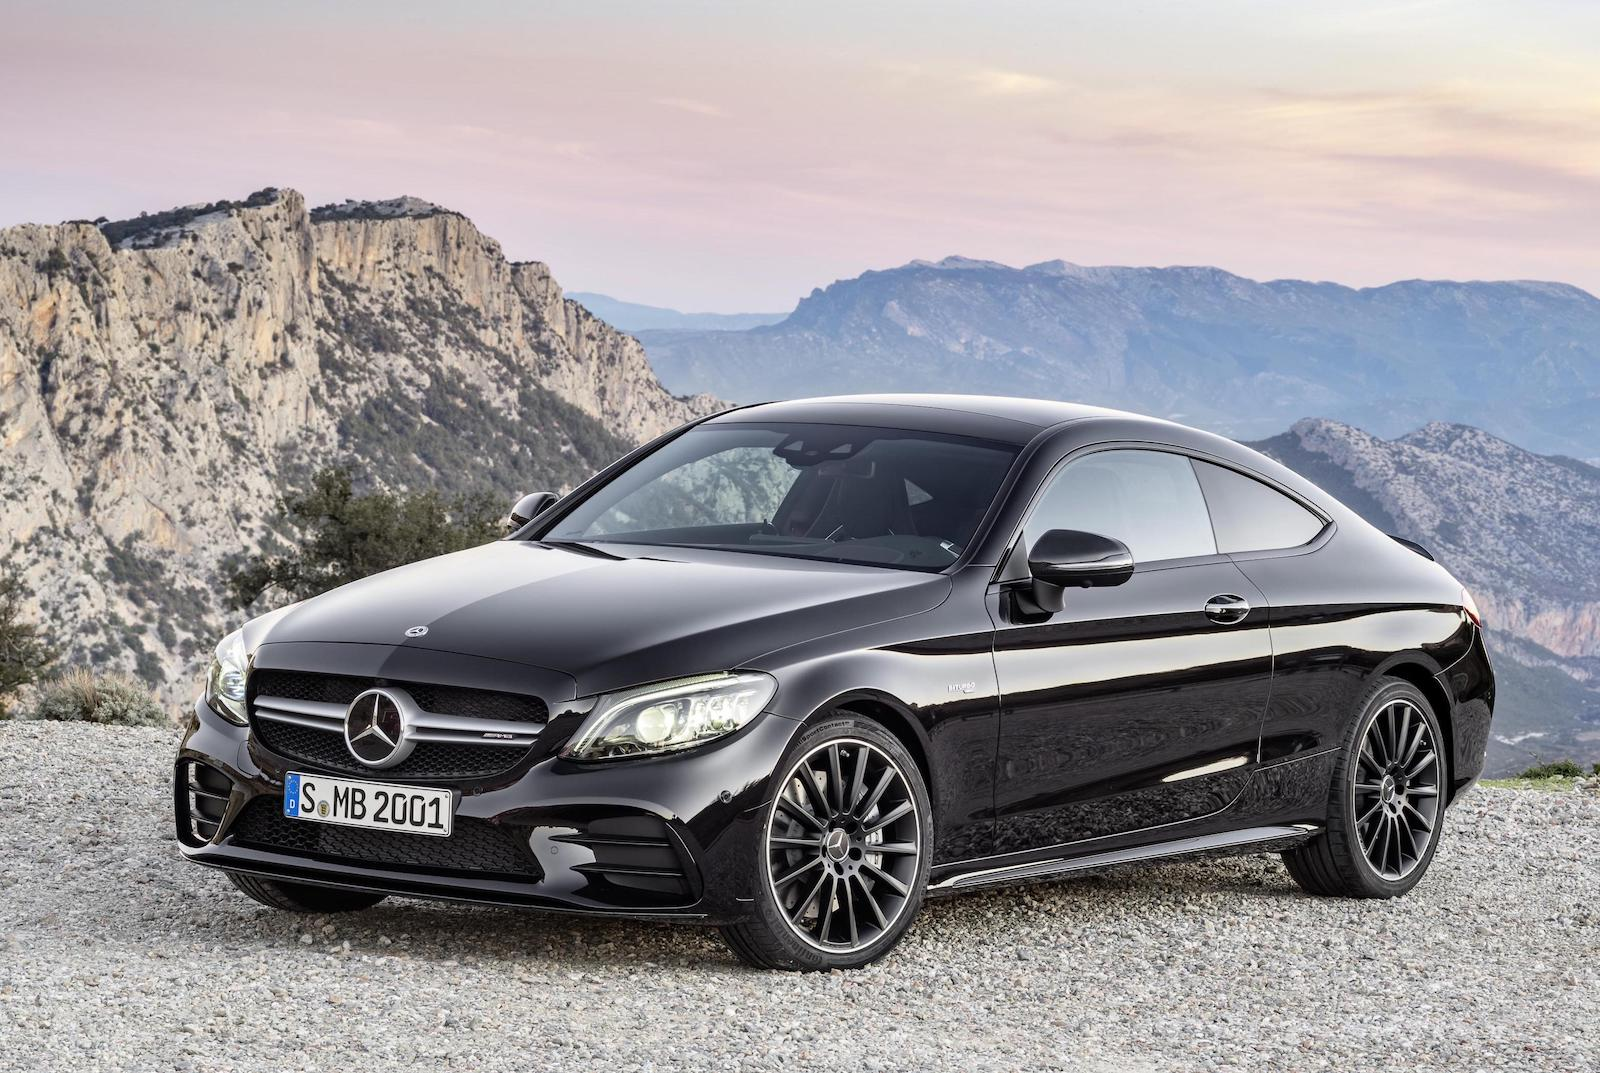 2018 mercedes amg c 43 coupe carbio get power boost. Black Bedroom Furniture Sets. Home Design Ideas